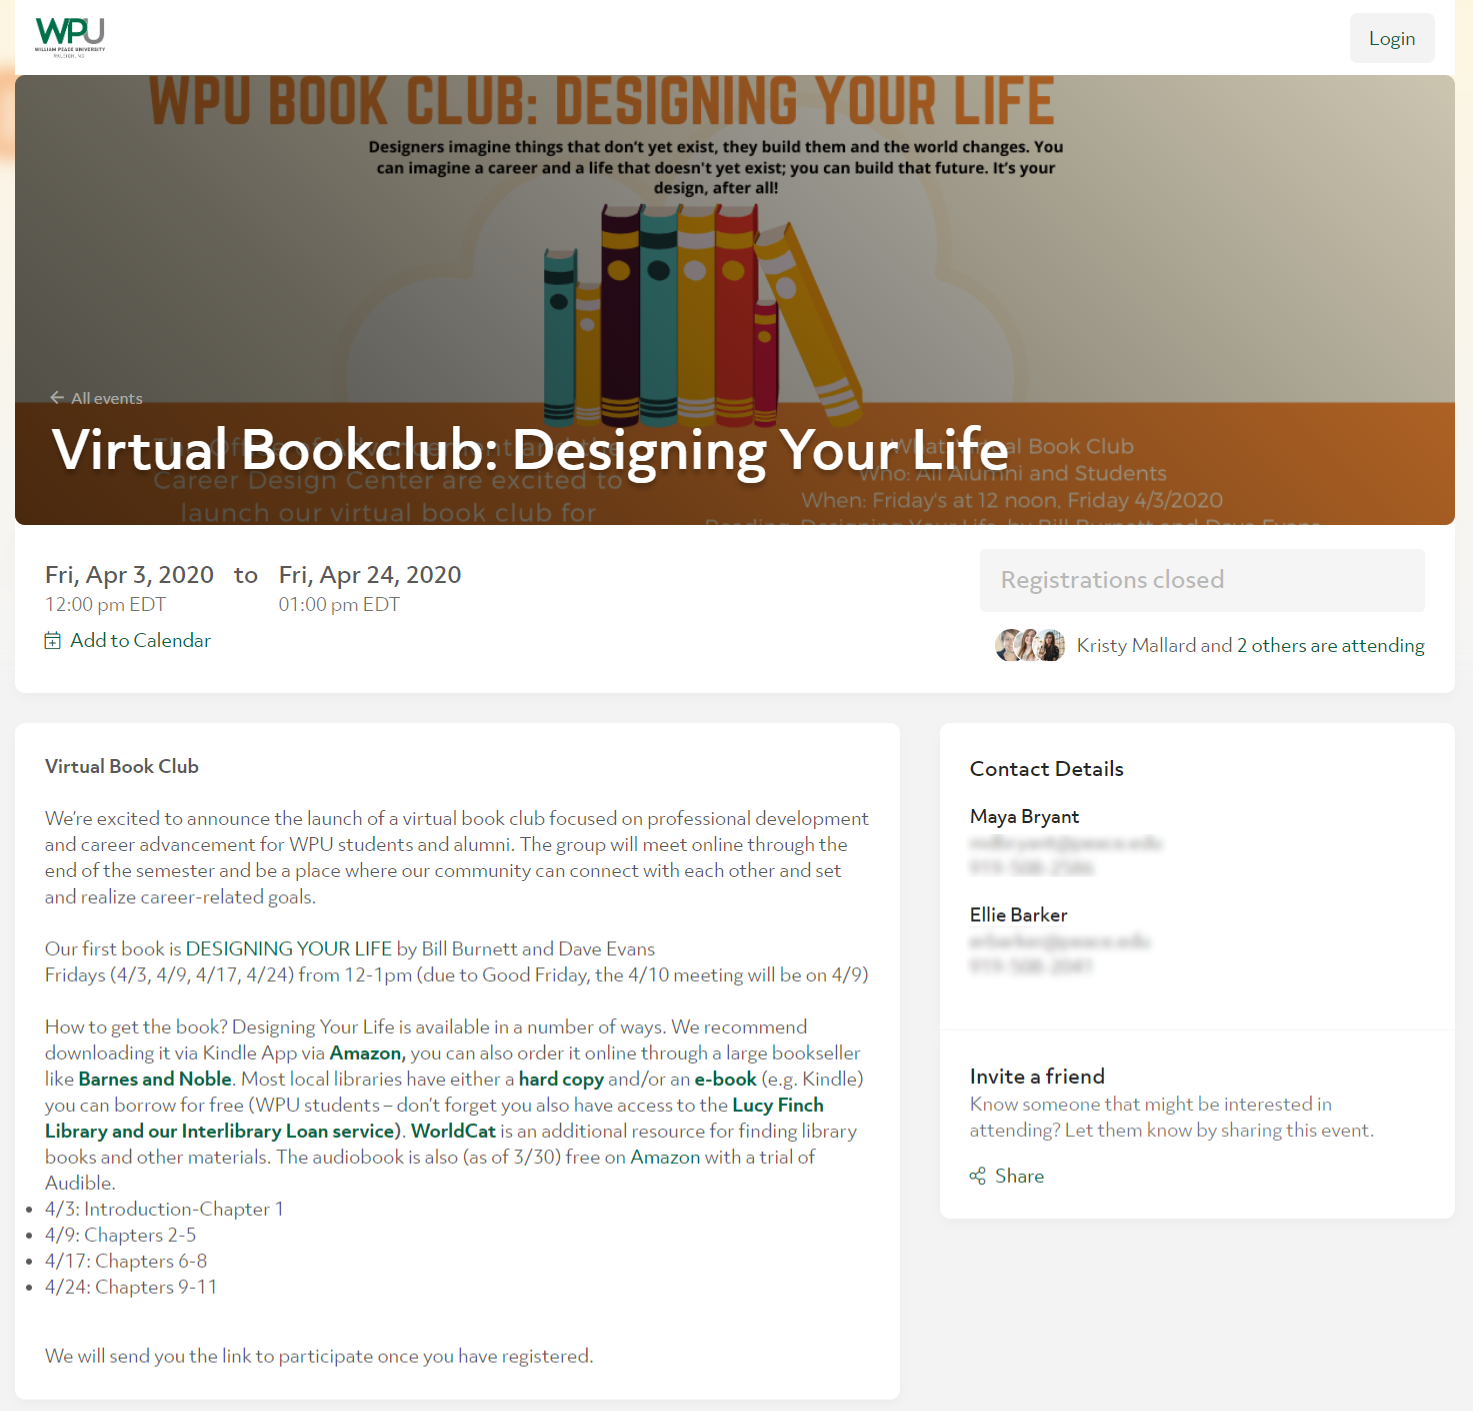 WPU's Virtual Book Club event